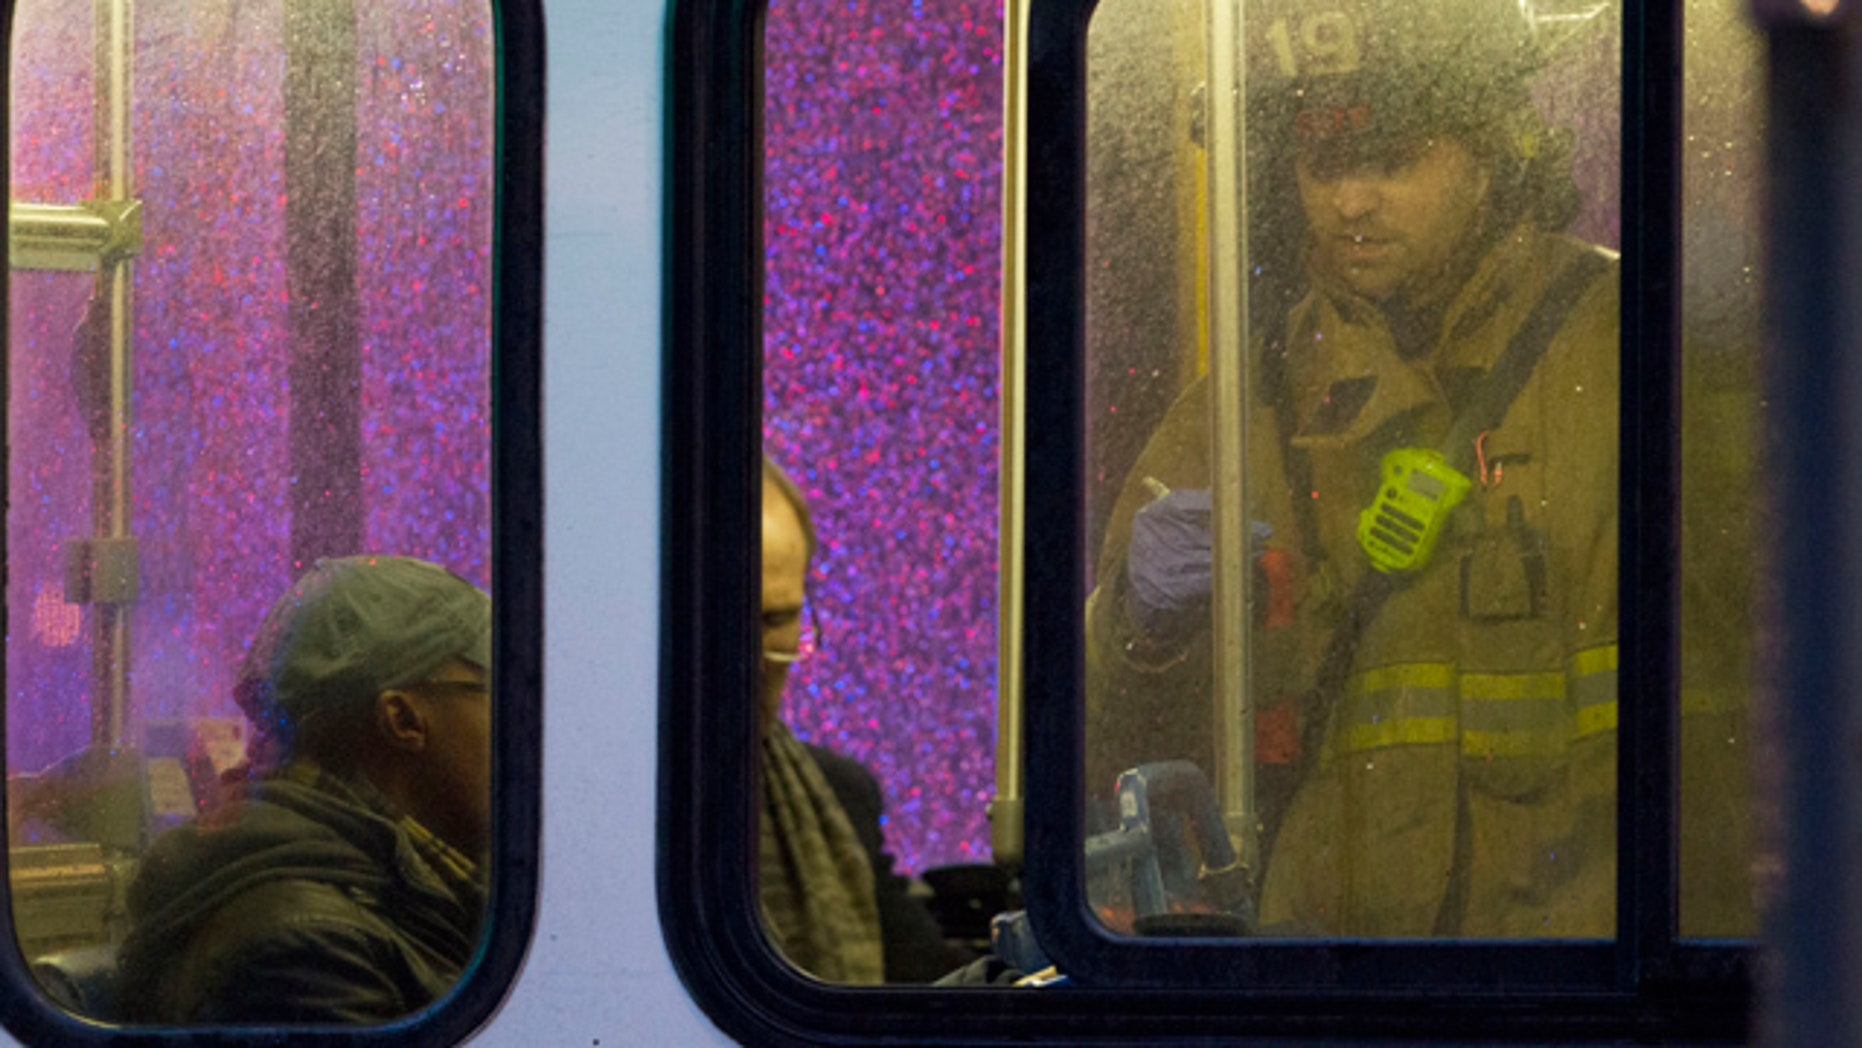 FILE - In this Jan. 12, 2015, file photo, a firefighter attends people on a bus to assess triage needs after people were evacuated from a smoke-filled Metro subway tunnel in Washington. One woman died and more than 80 others were sickened by smoke after an electrical malfunction in January caused a train to fill with smoke while it stopped in a tunnel in downtown Washington.  (AP Photo/Jacquelyn Martin, File)